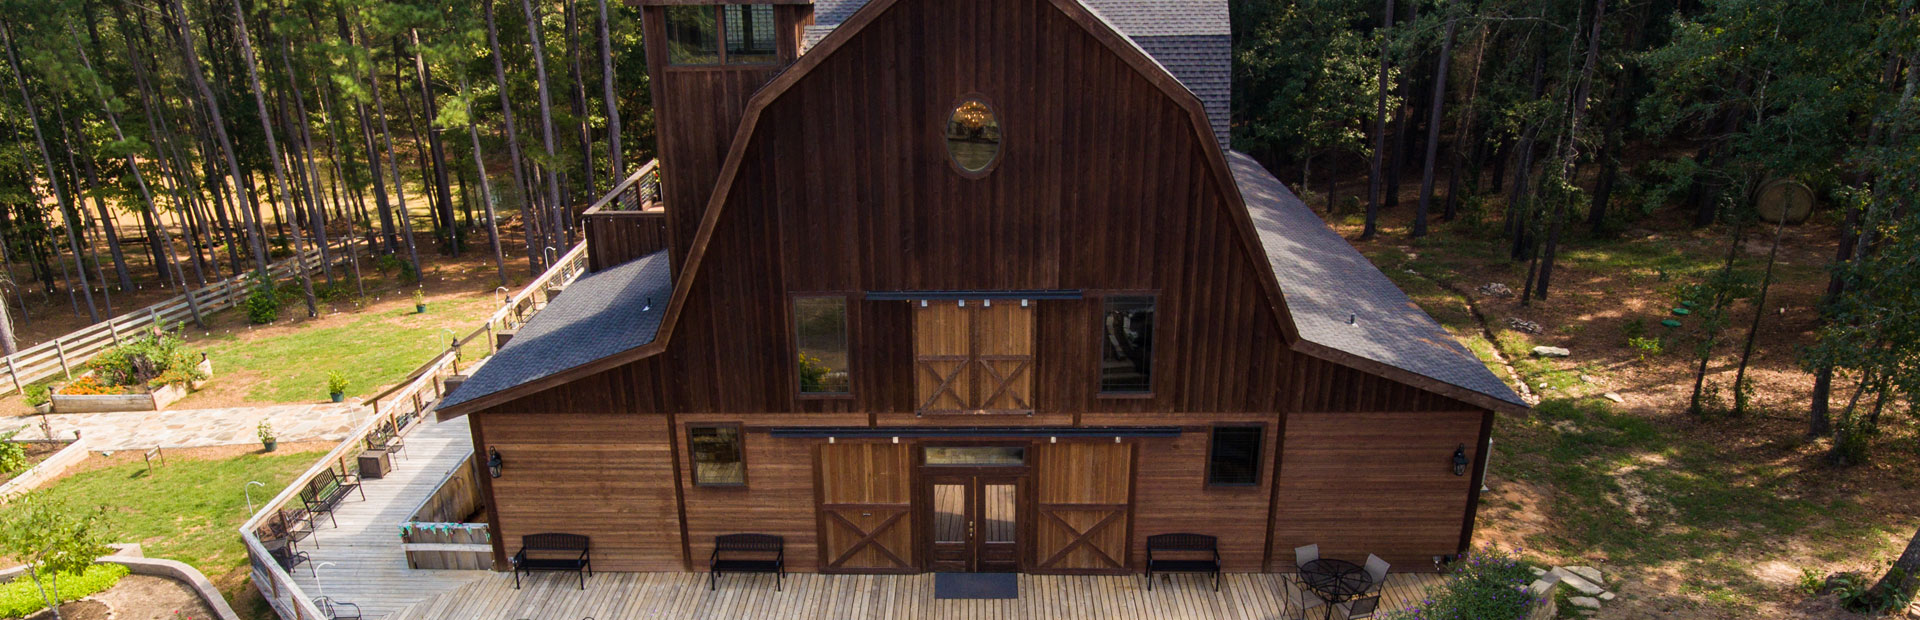 How to do business in a barn